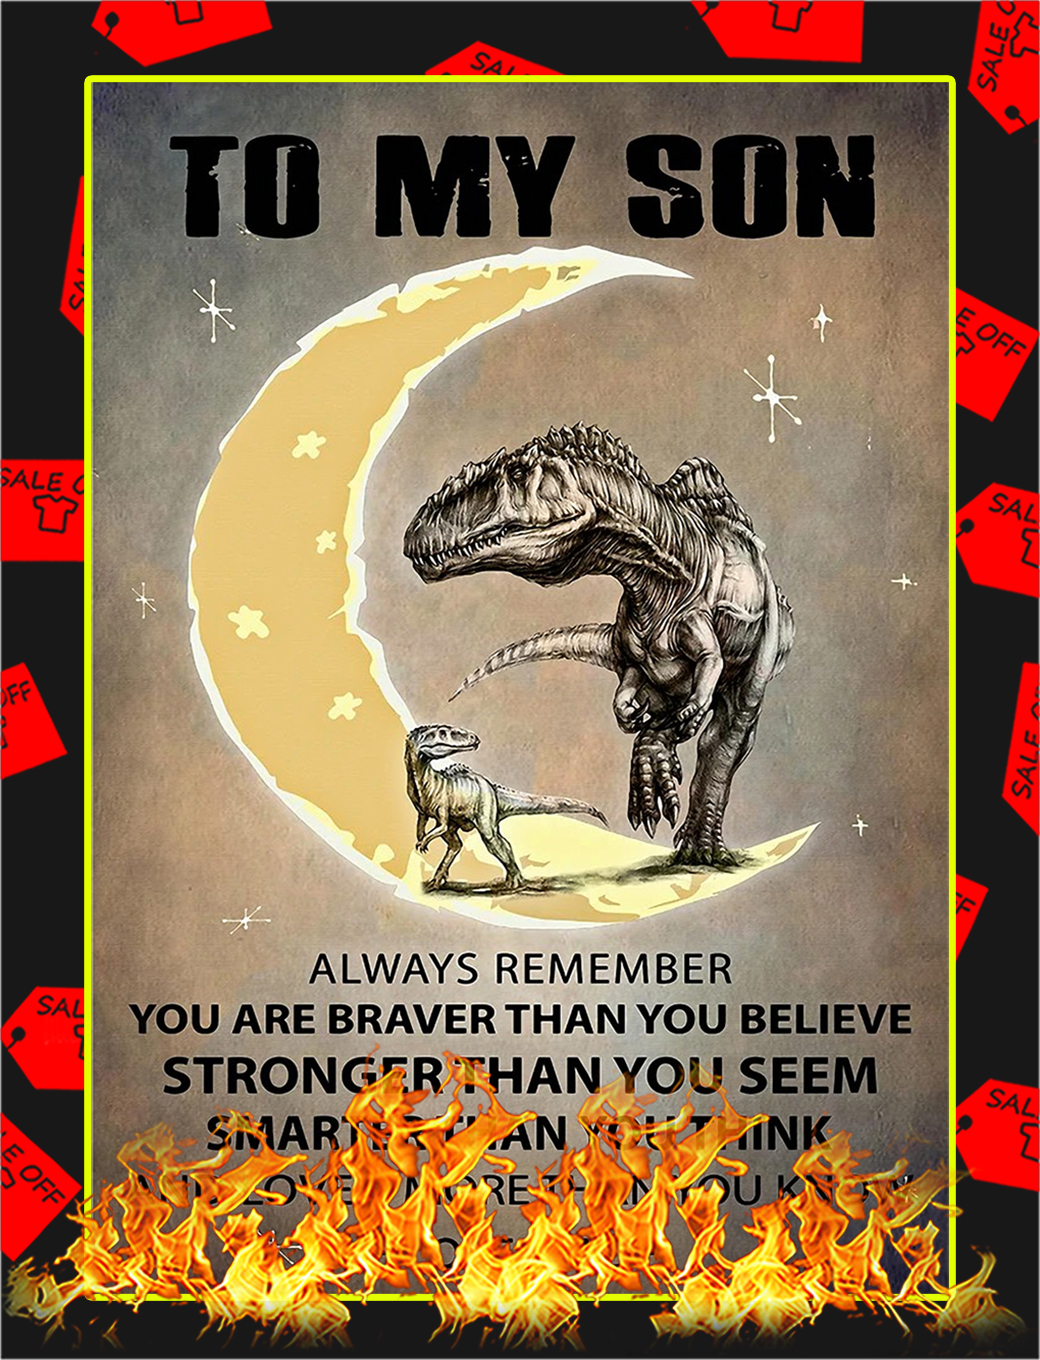 Dinosaur Dad to my son poster - A2